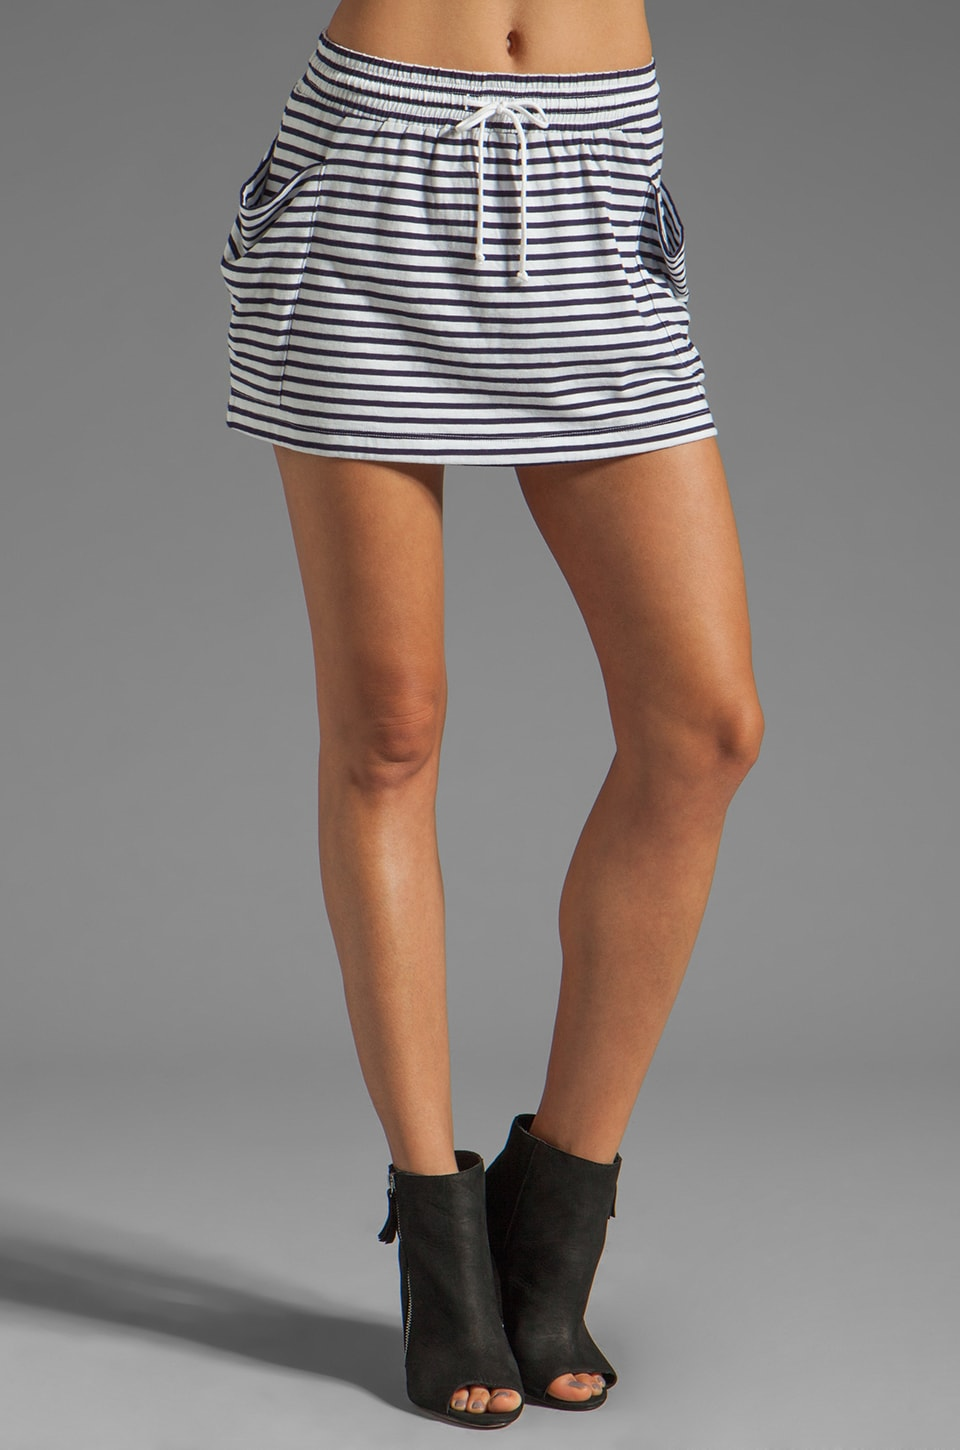 DemyLee Sabrina Sailor Stripe Skirt in White/Navy